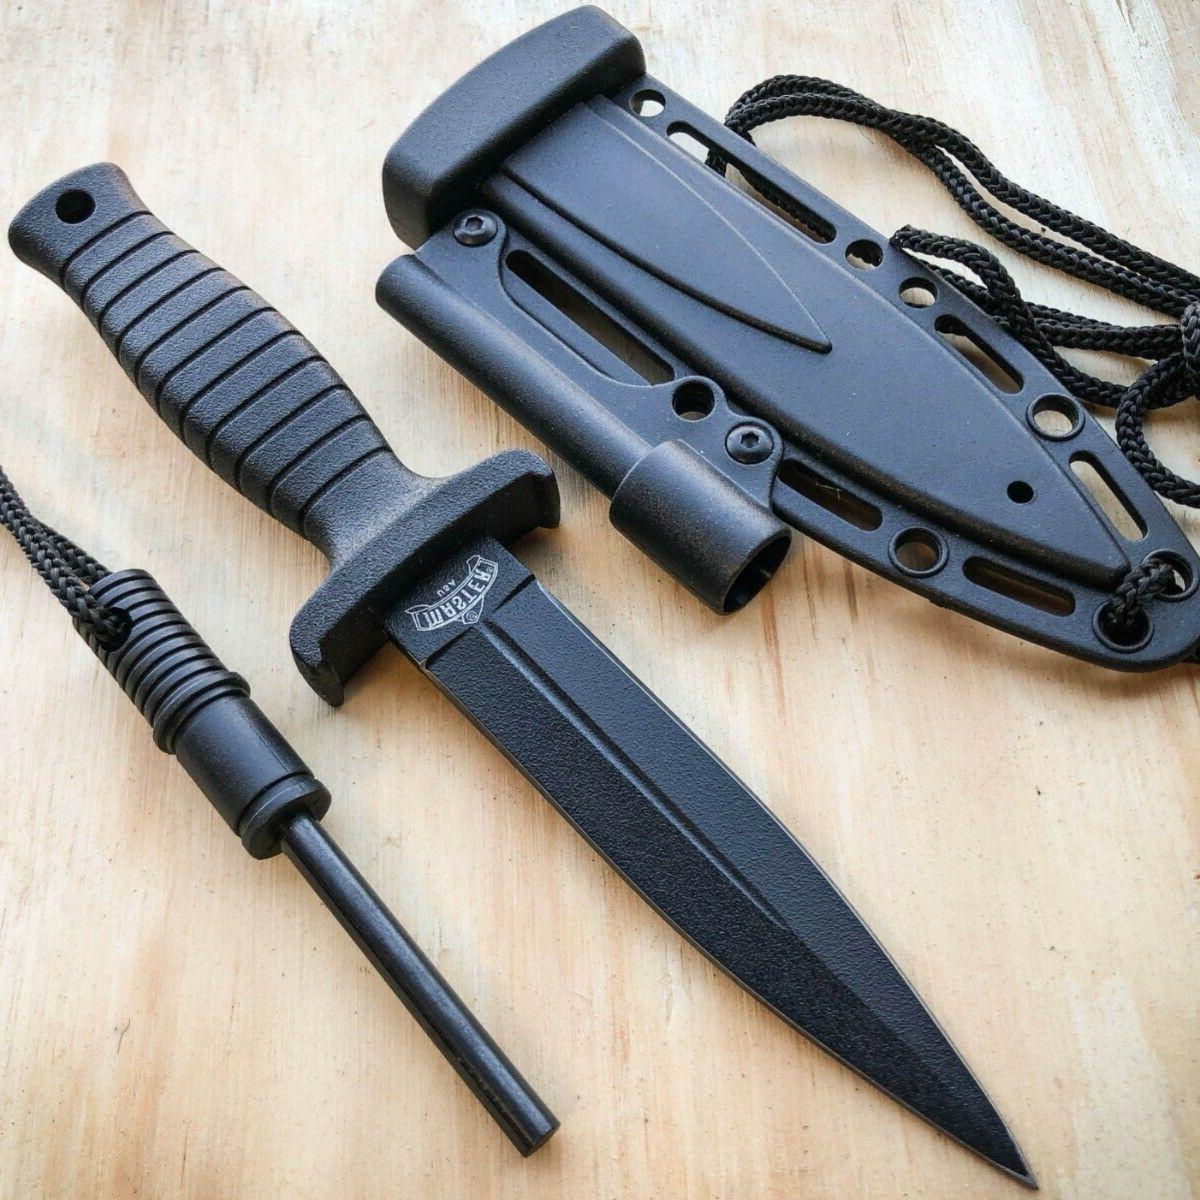 7 double edge military tactical hunting dagger